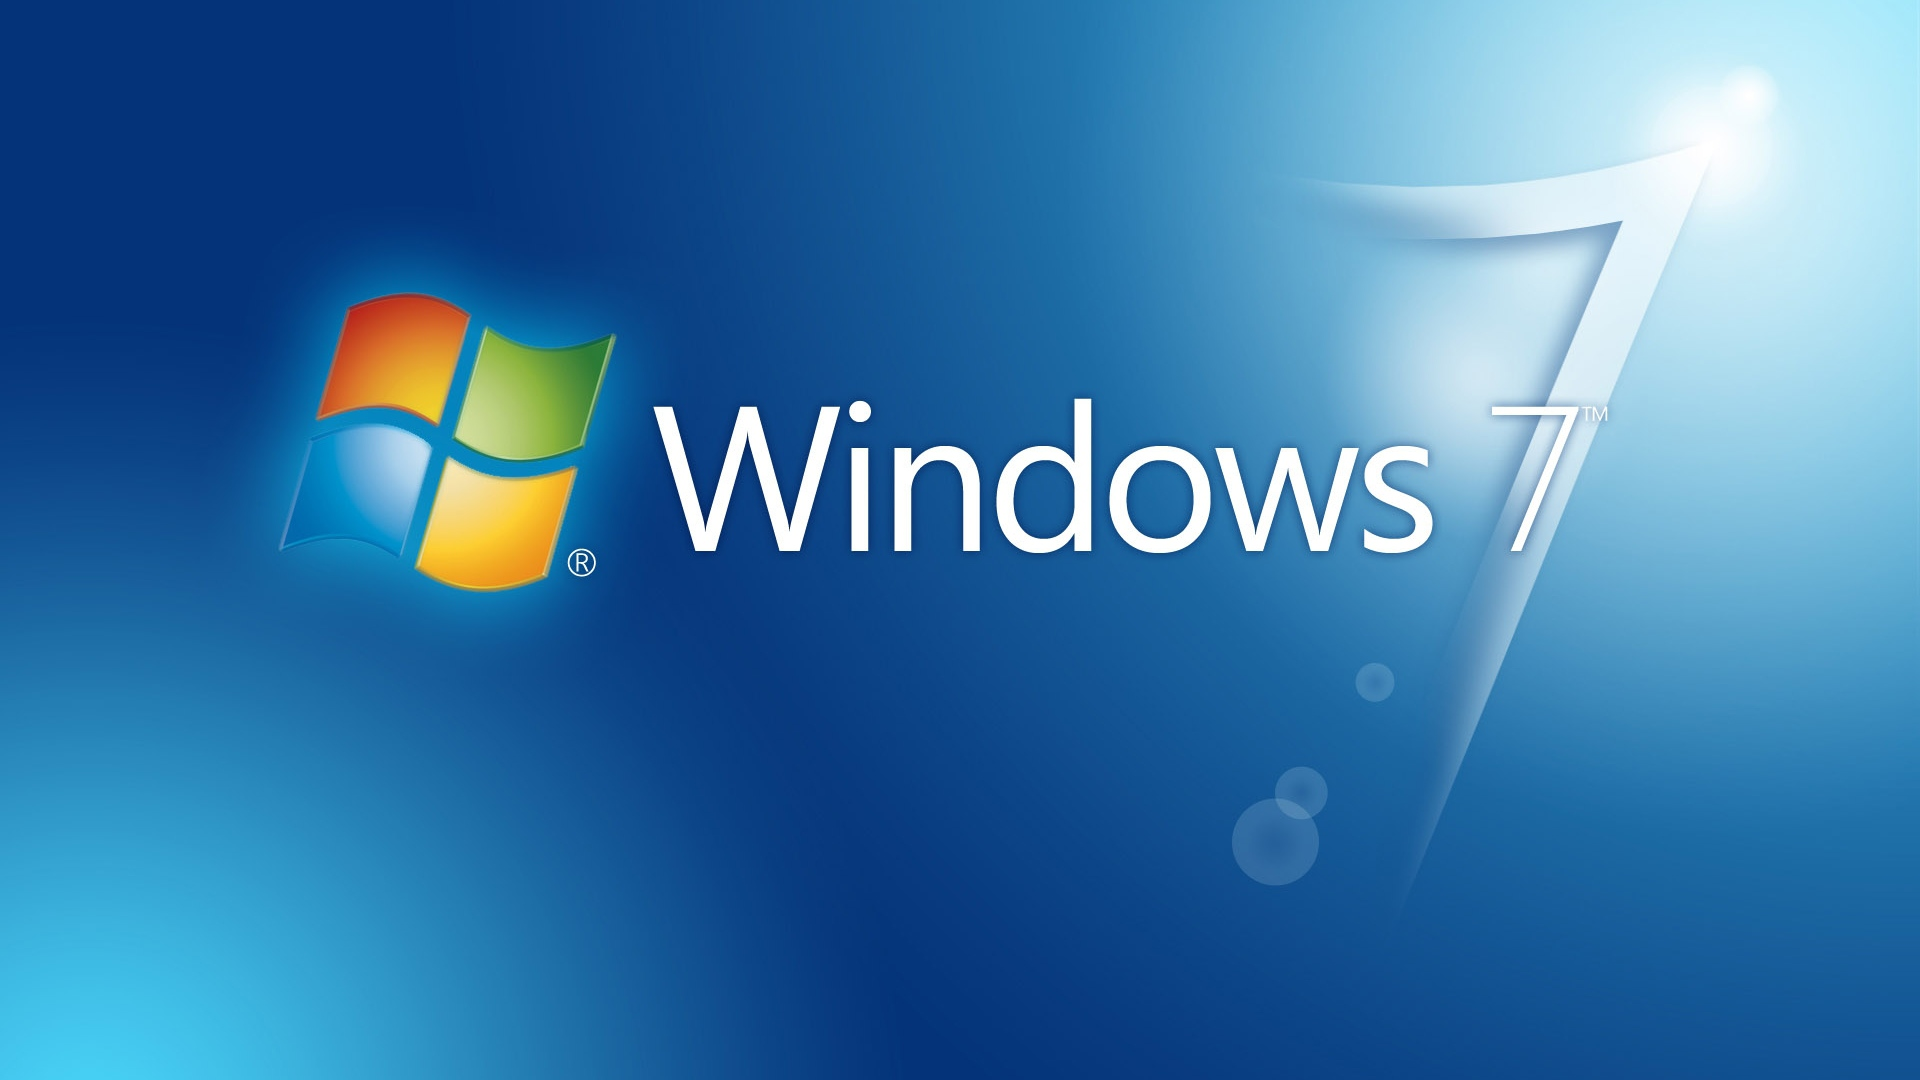 Windows 7 Glow Blue wallpapers (47 Wallpapers) - HD Wallpapers